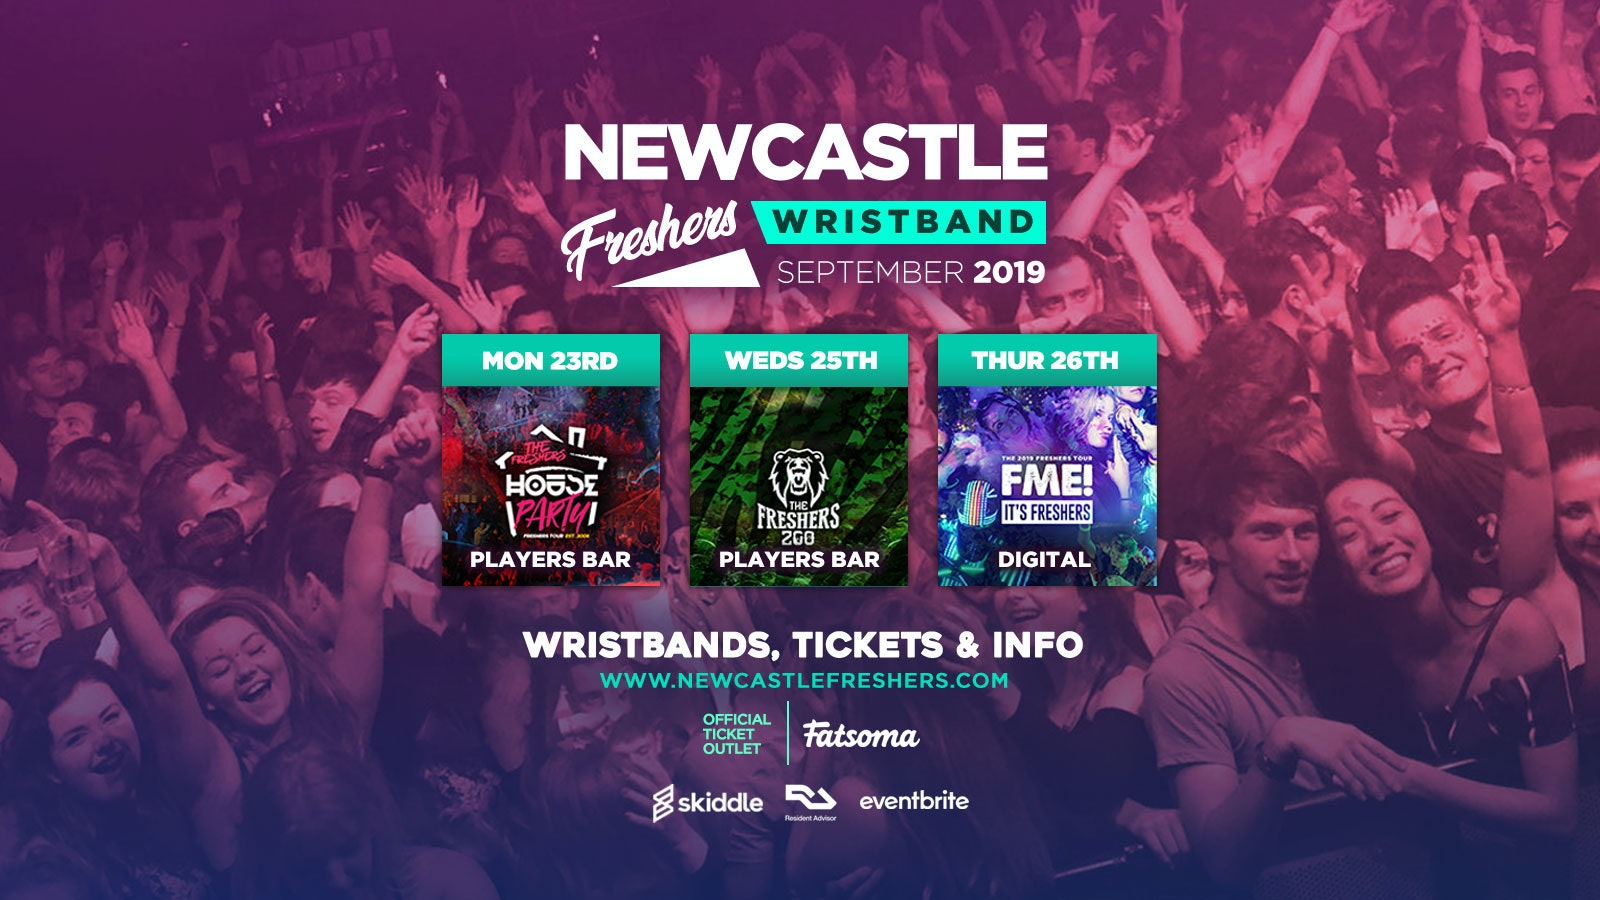 Newcastle Freshers Wristband 2019 ///